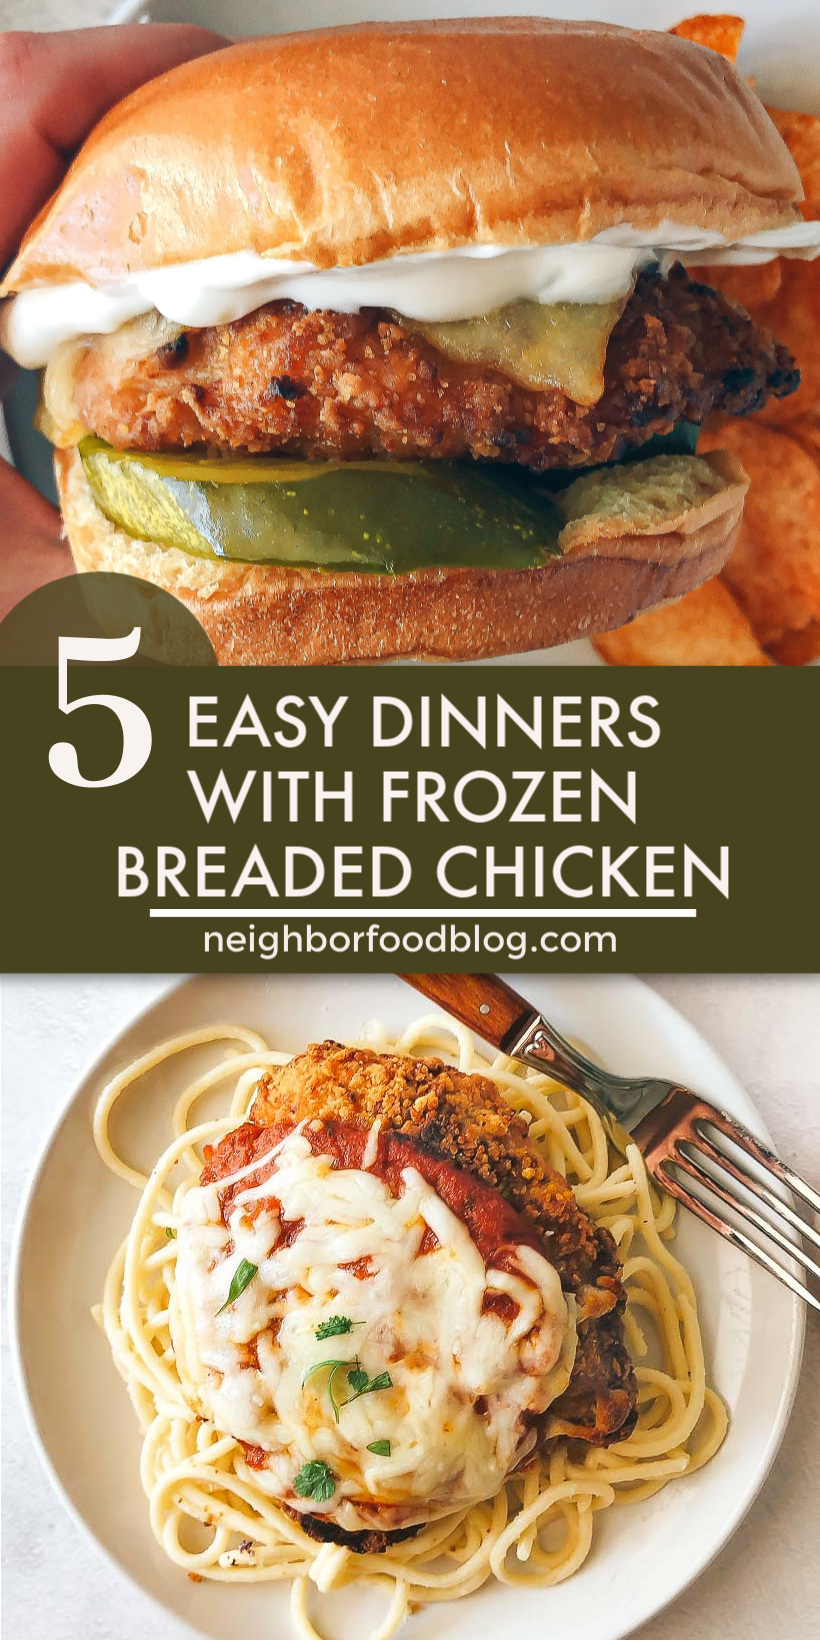 5 Easy Dinners to Make with Frozen Breaded Chicken